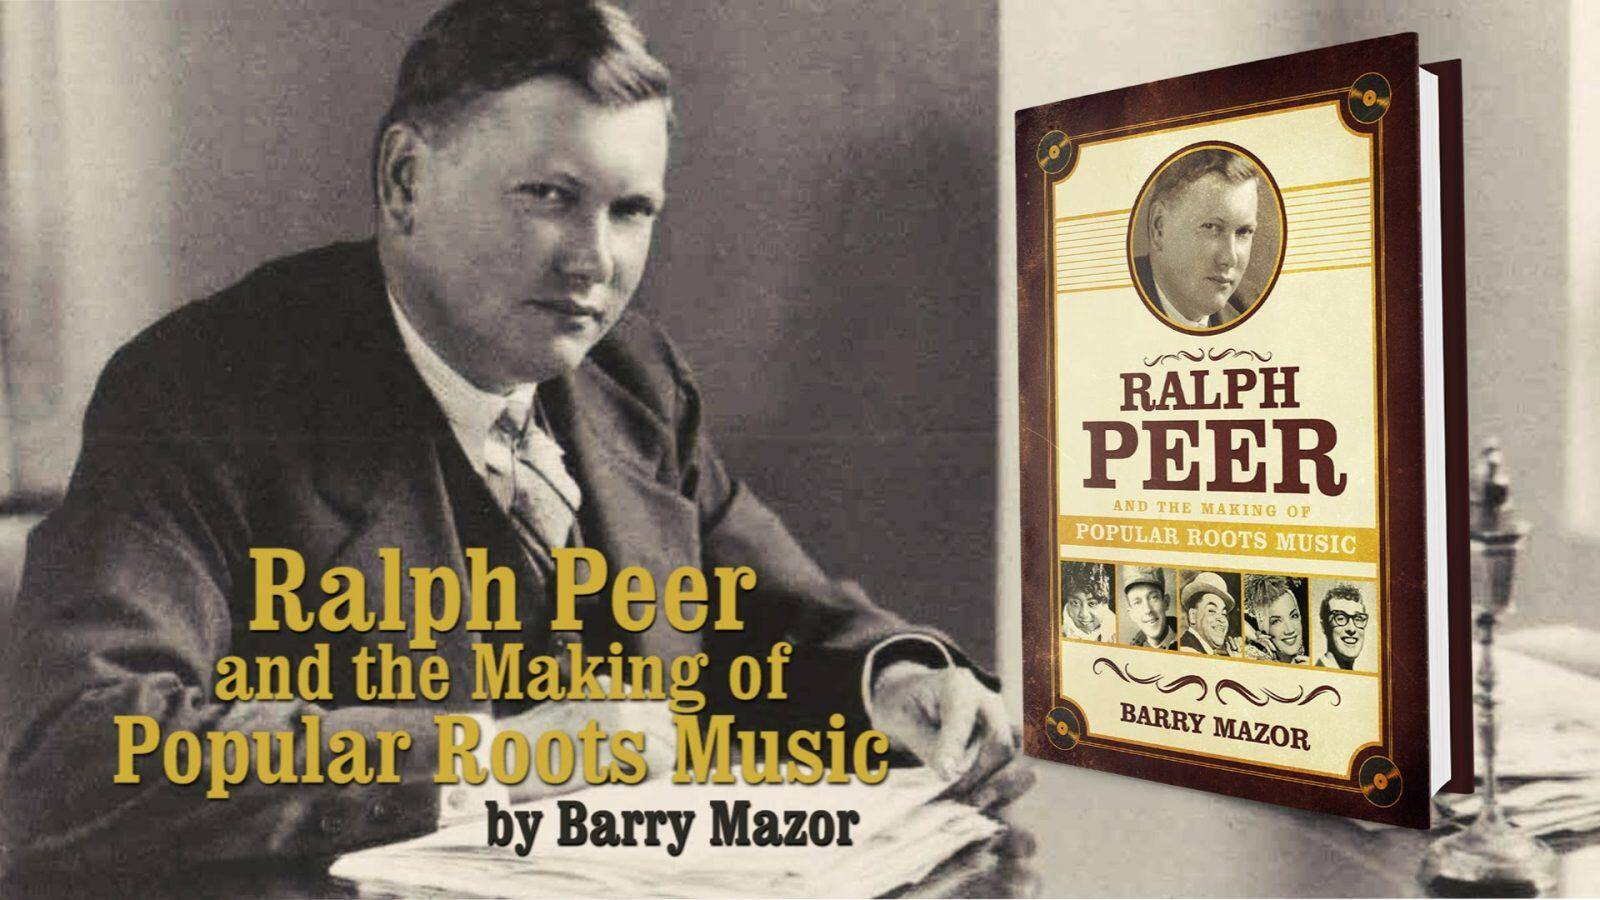 Ralph Peer and the Making of Popular Roots Music by Barry Mazor